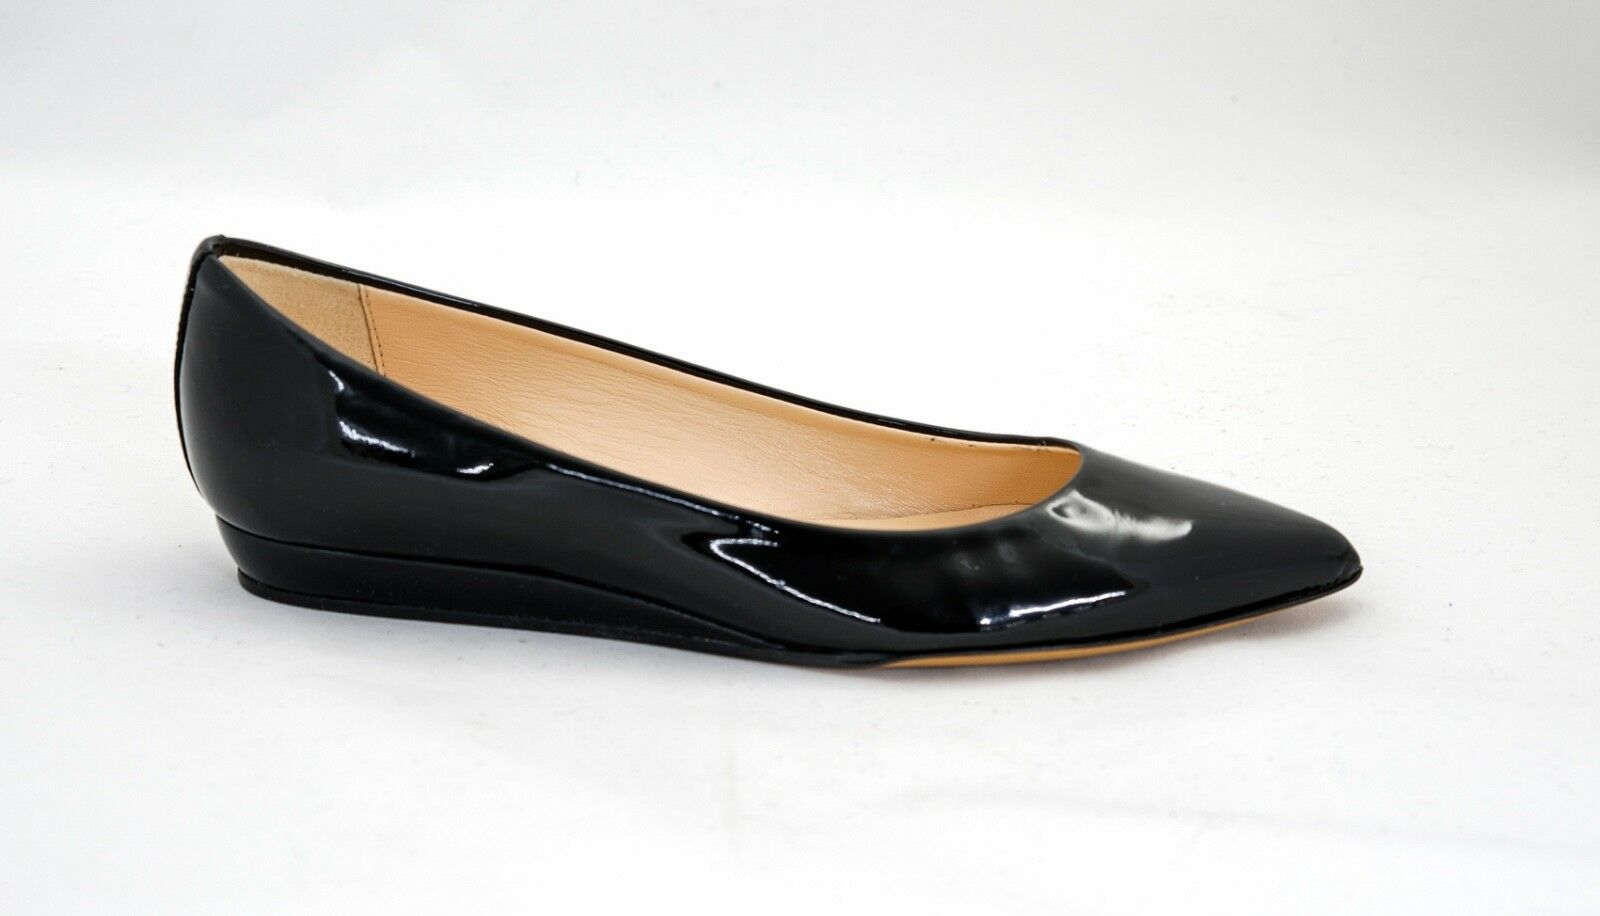 Fabio Rusconi 1719 Black Patent Flat Shoe - New in Box